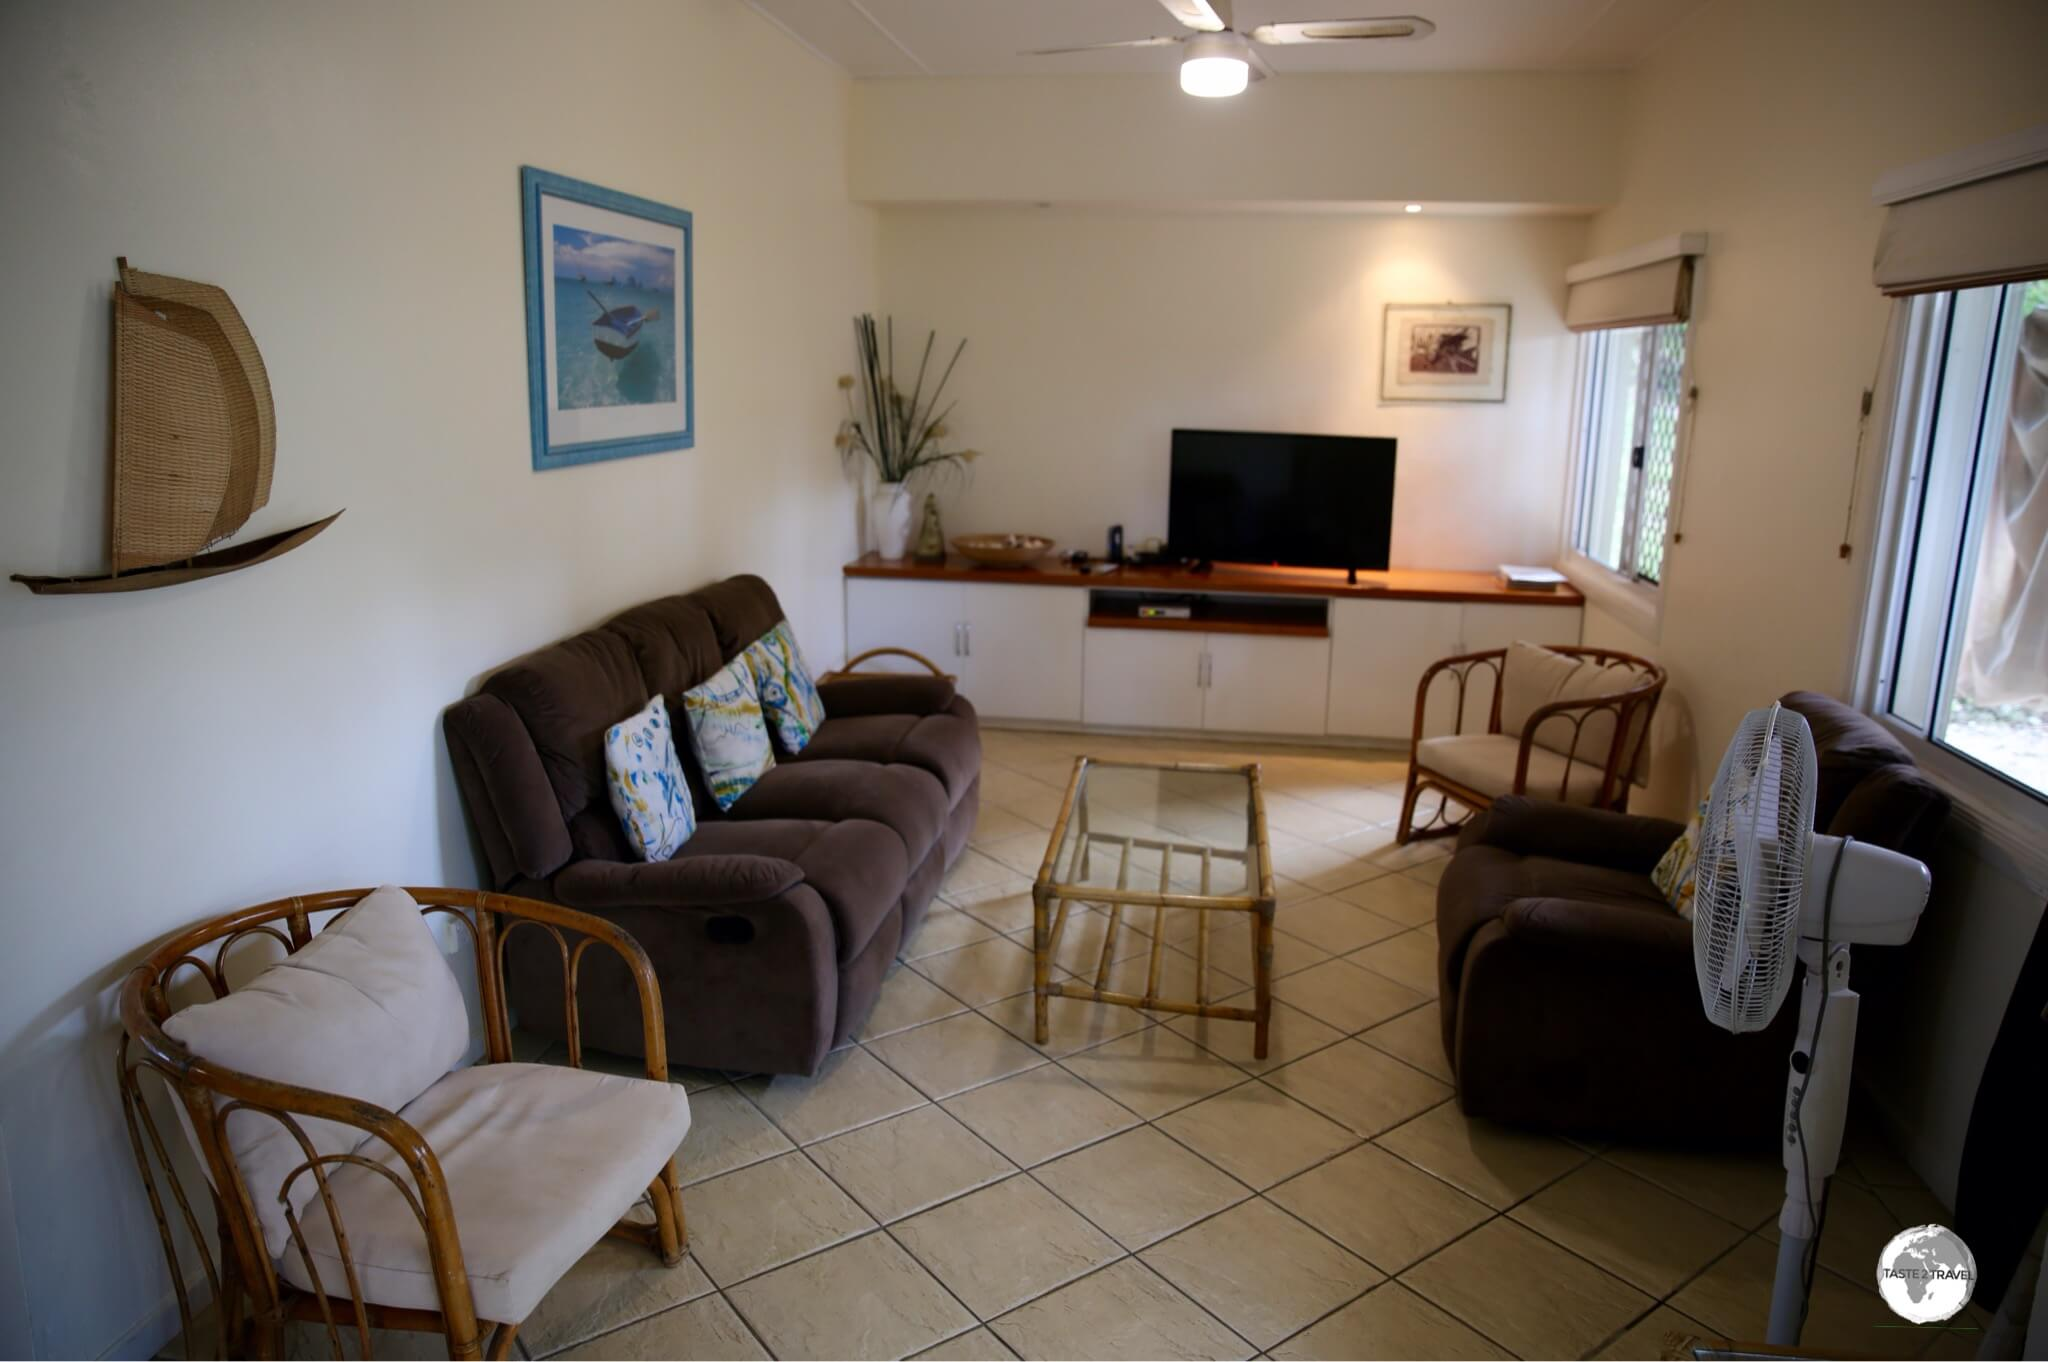 The living room in 'The Cottage' at Seachange Lodge.